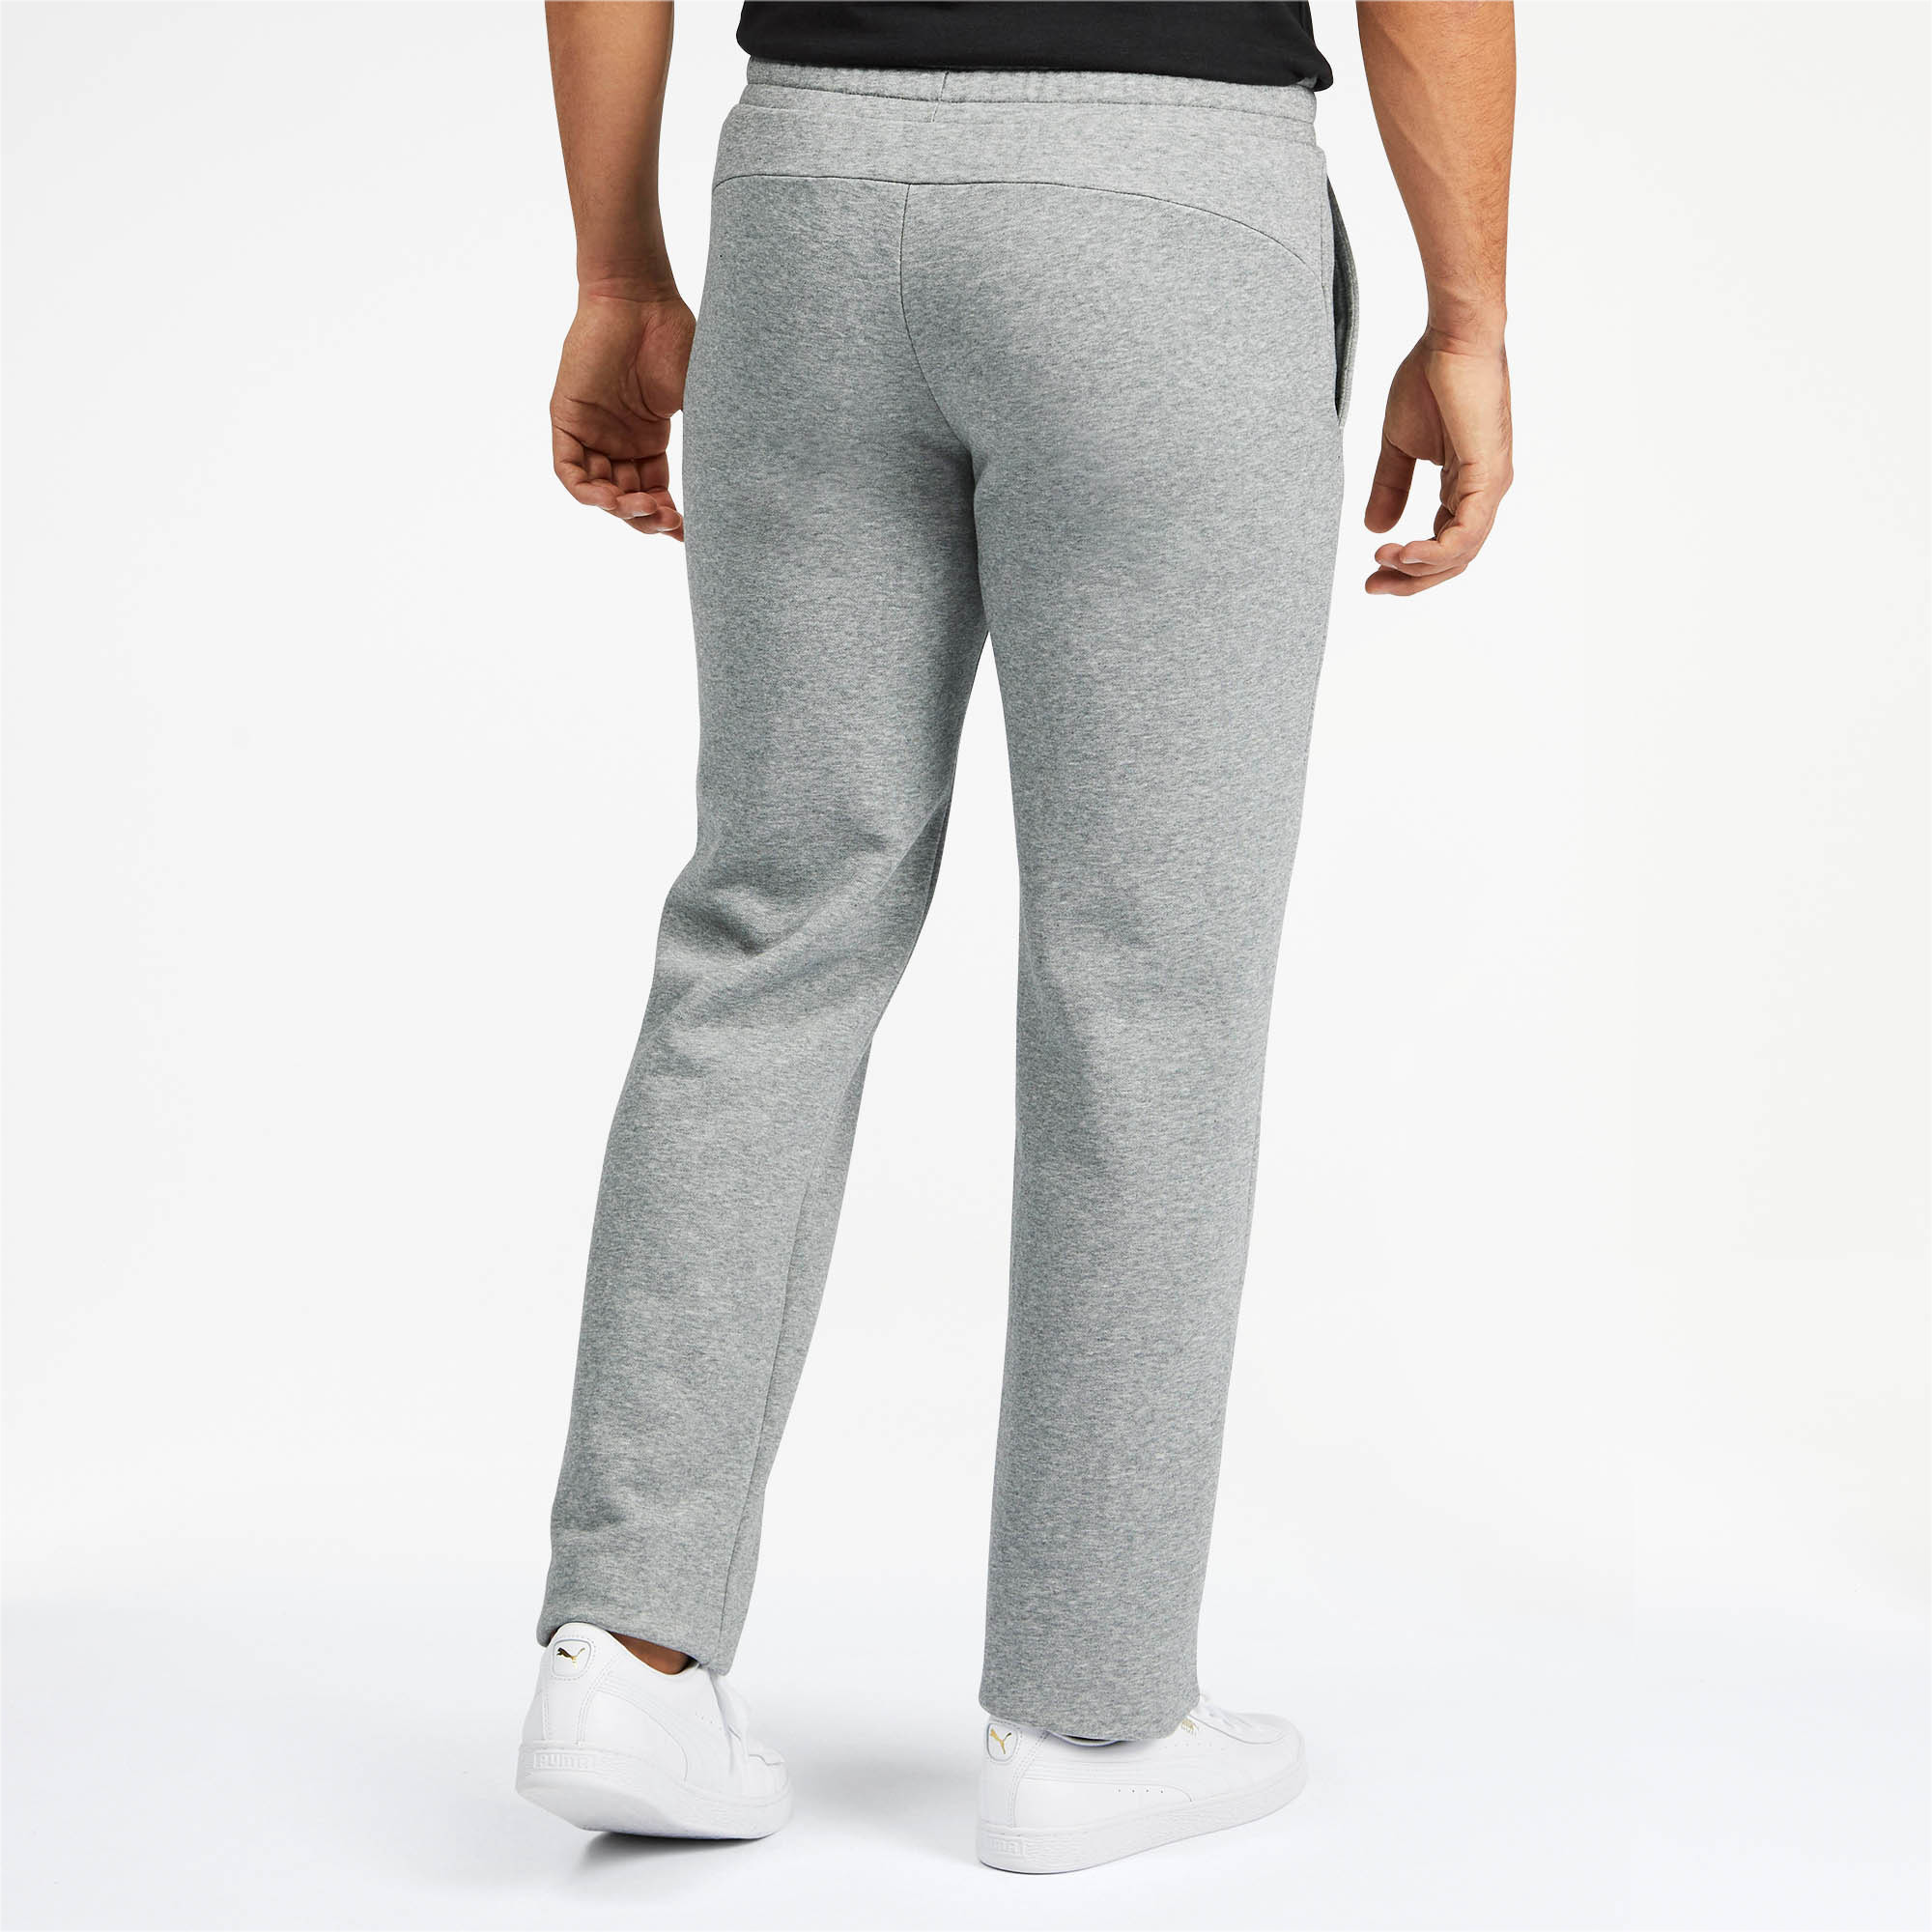 PUMA-Essentials-Men-039-s-Fleece-Pants-Men-Knitted-Pants-Basics thumbnail 10